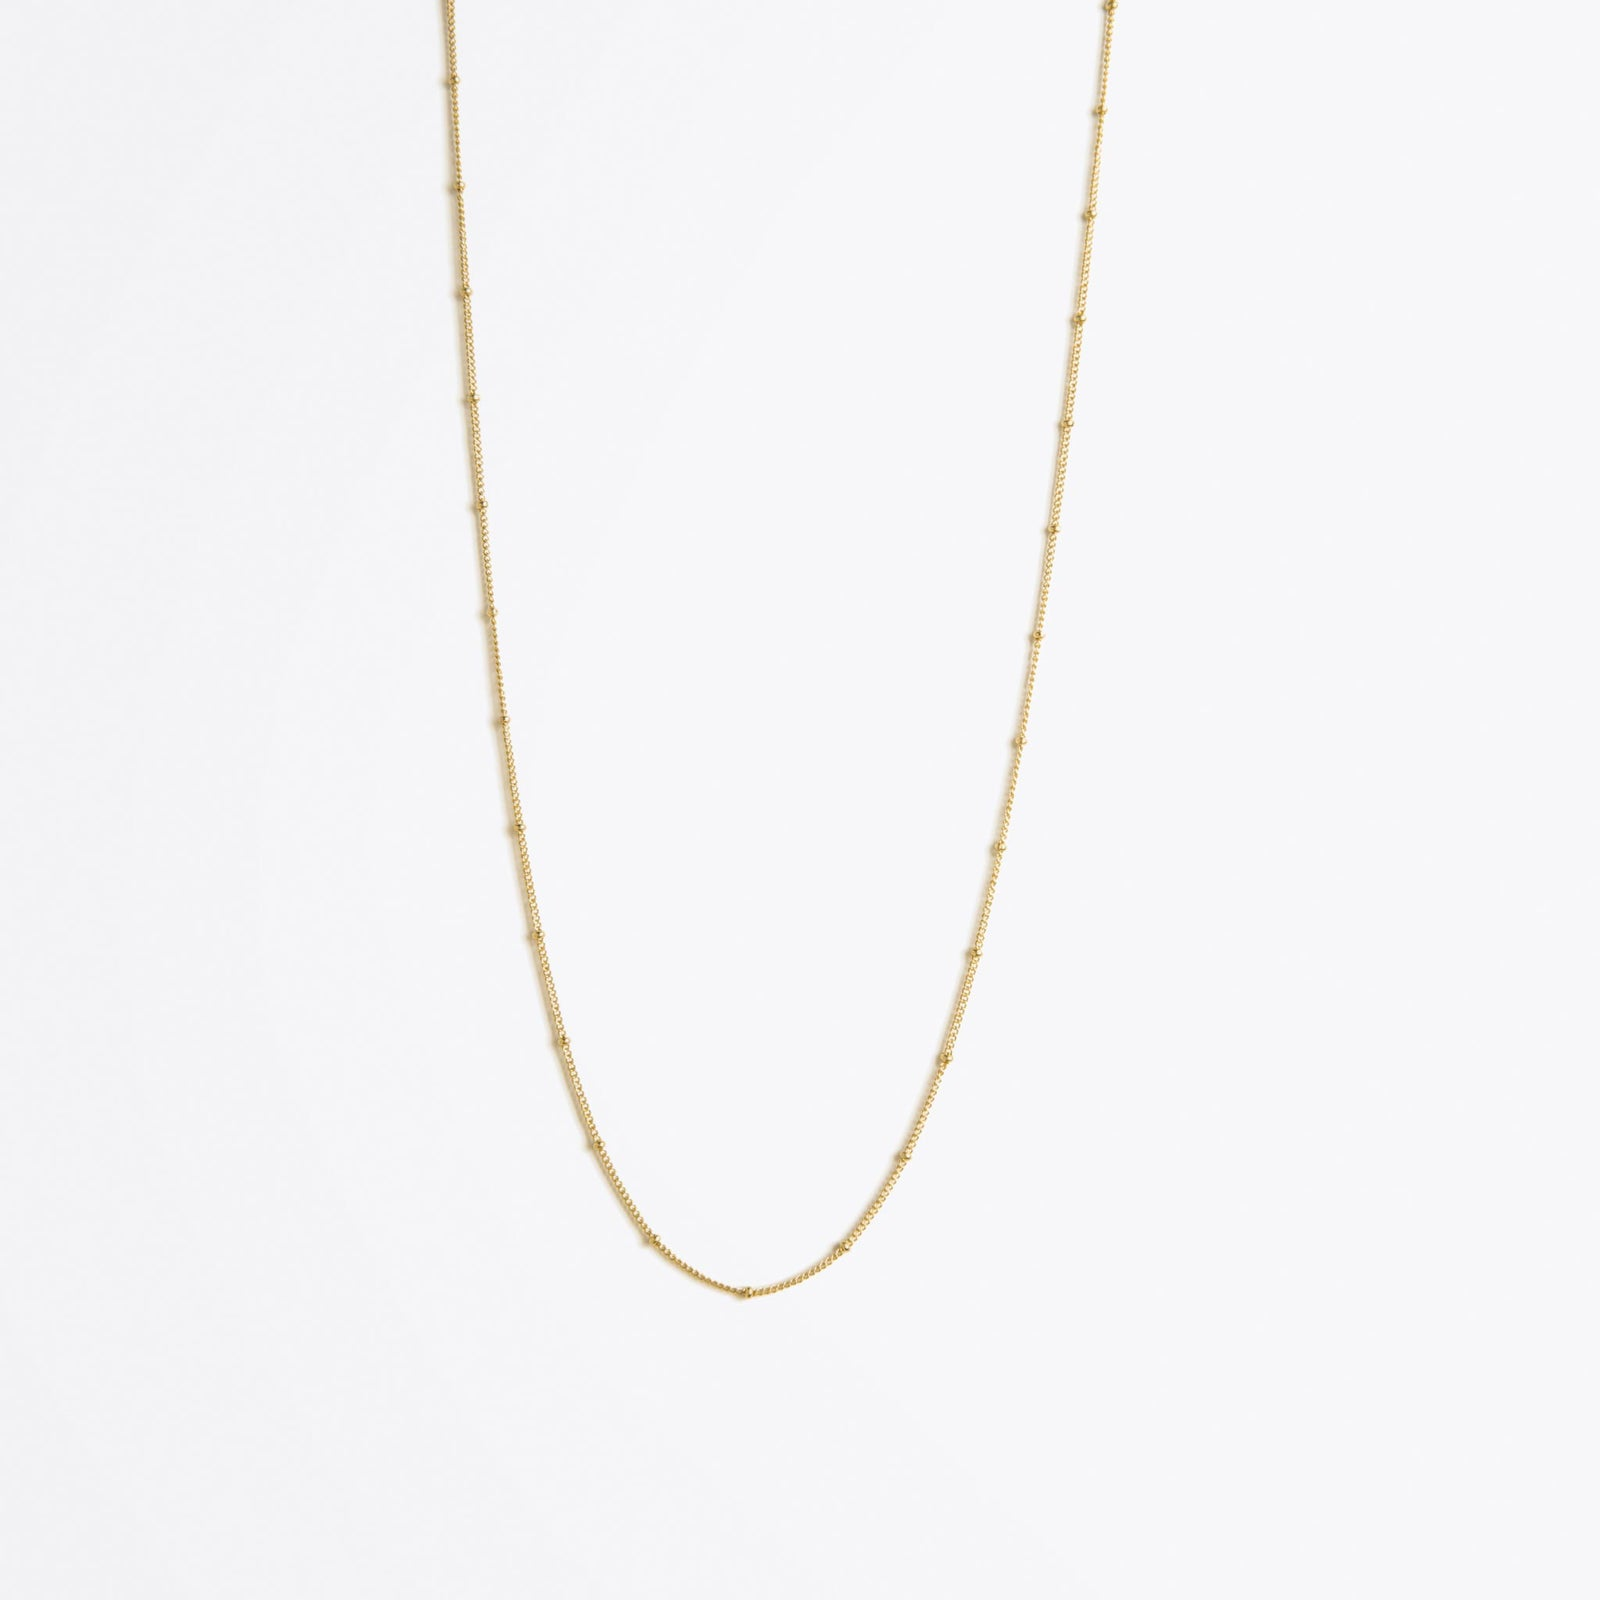 Wanderlust Life Ethically Handmade jewellery made in the UK. Minimalist gold and fine cord jewellery. satellite layering gold chain necklace, long length